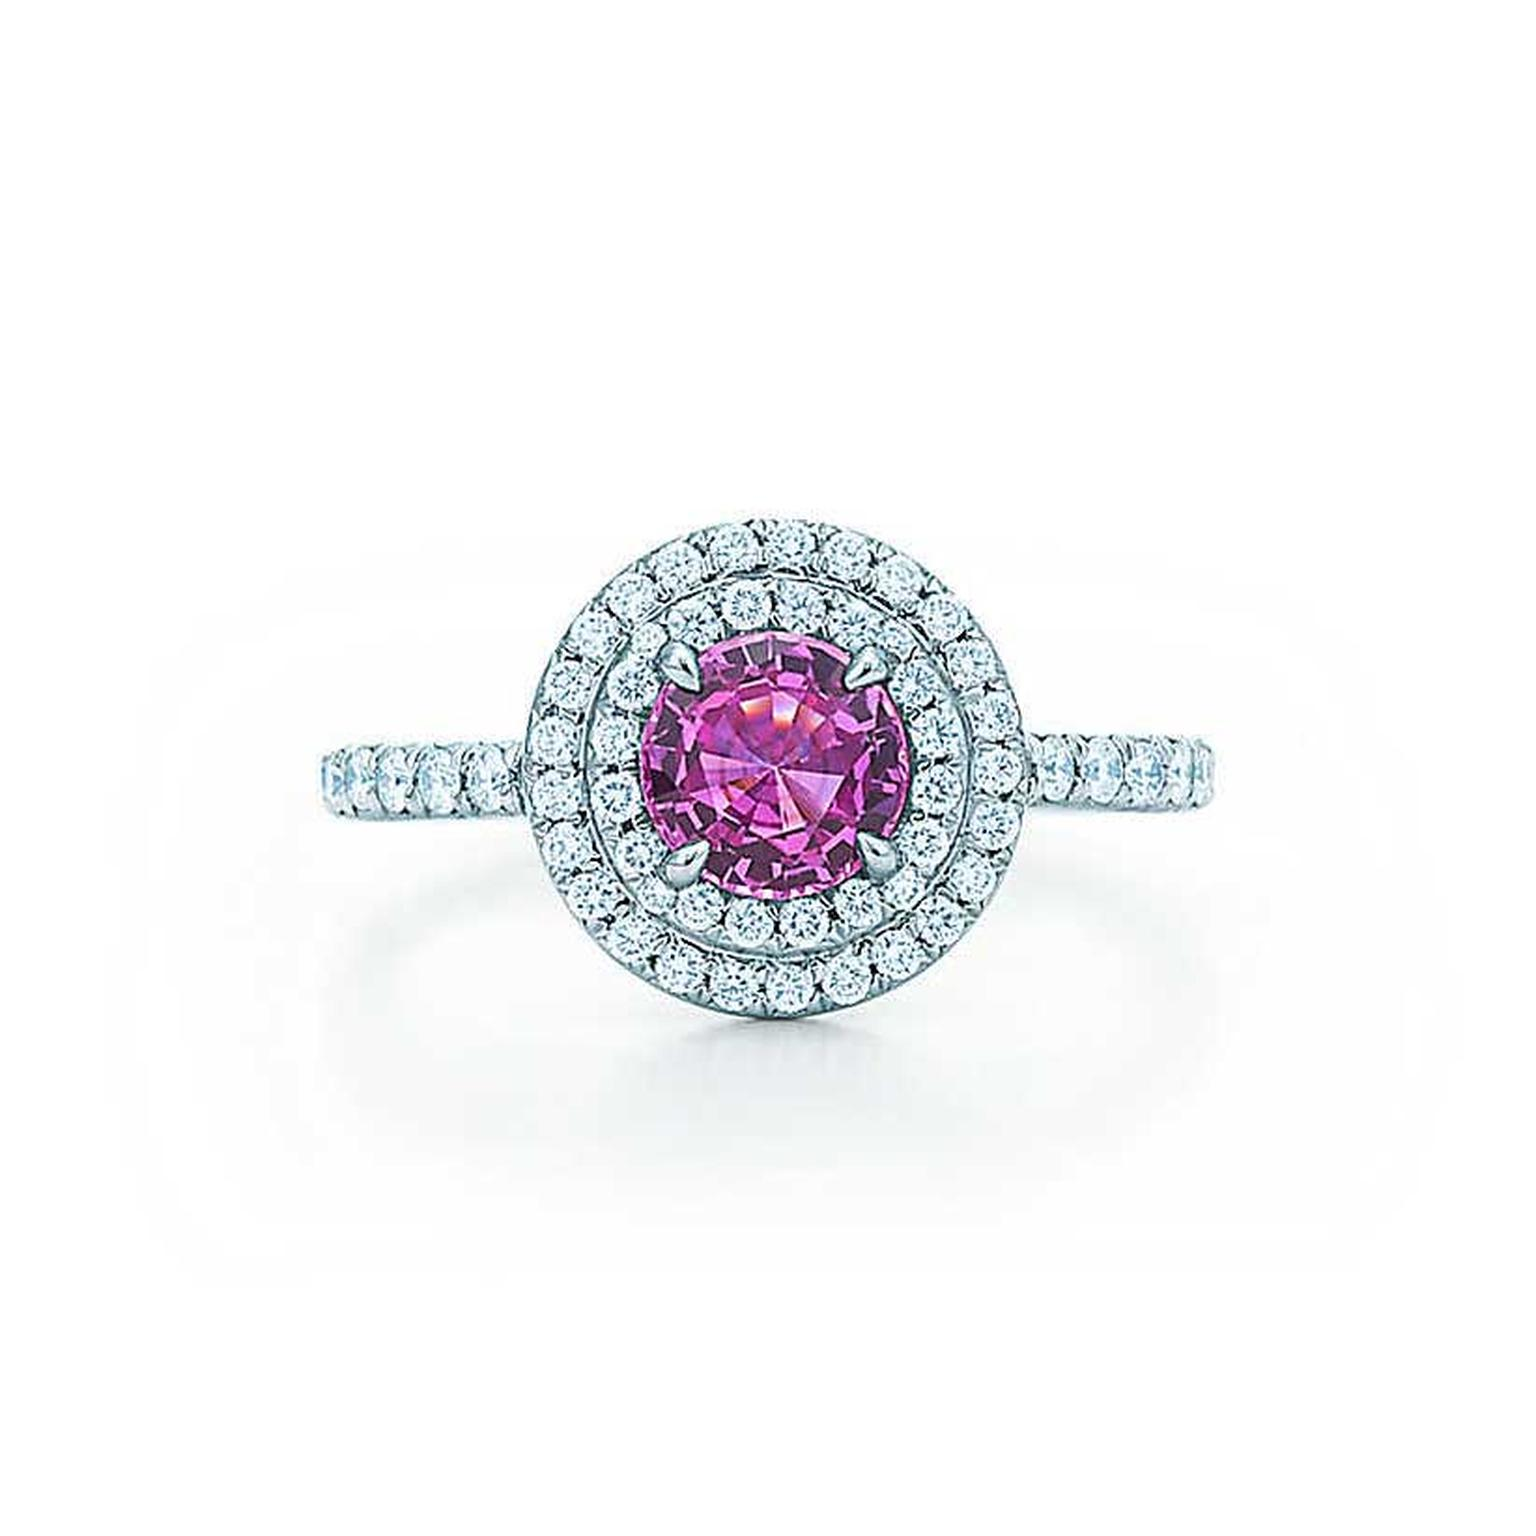 Tiffany & Co. pink sapphire and diamond Soleste ring (£5,950).